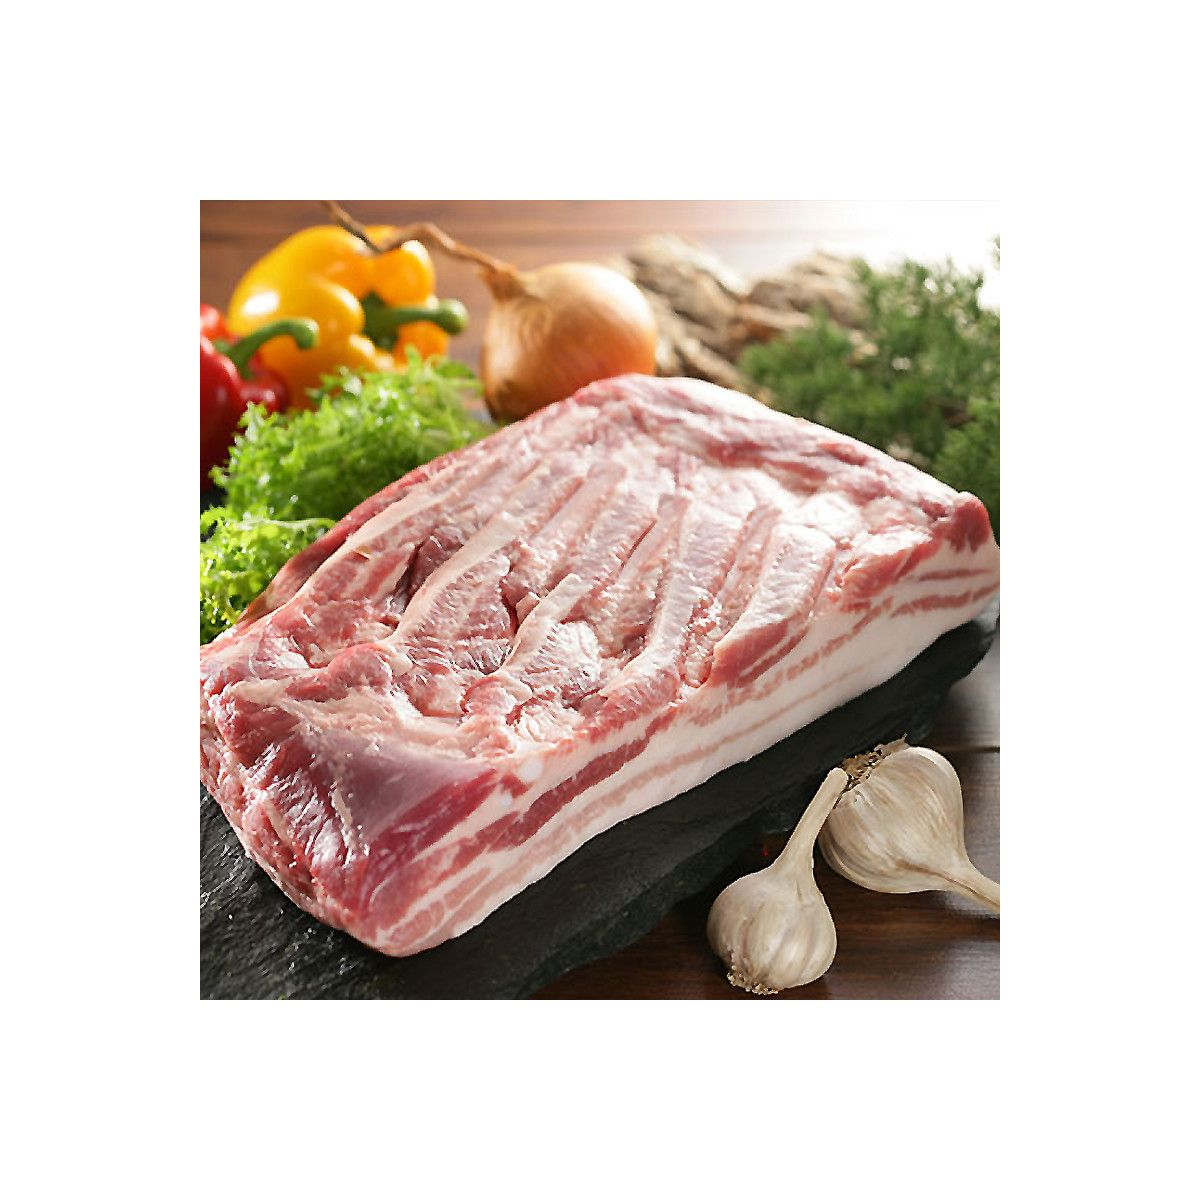 PANASIA  (FR) KSHOP Pork Belly ganz 1.5kg 1